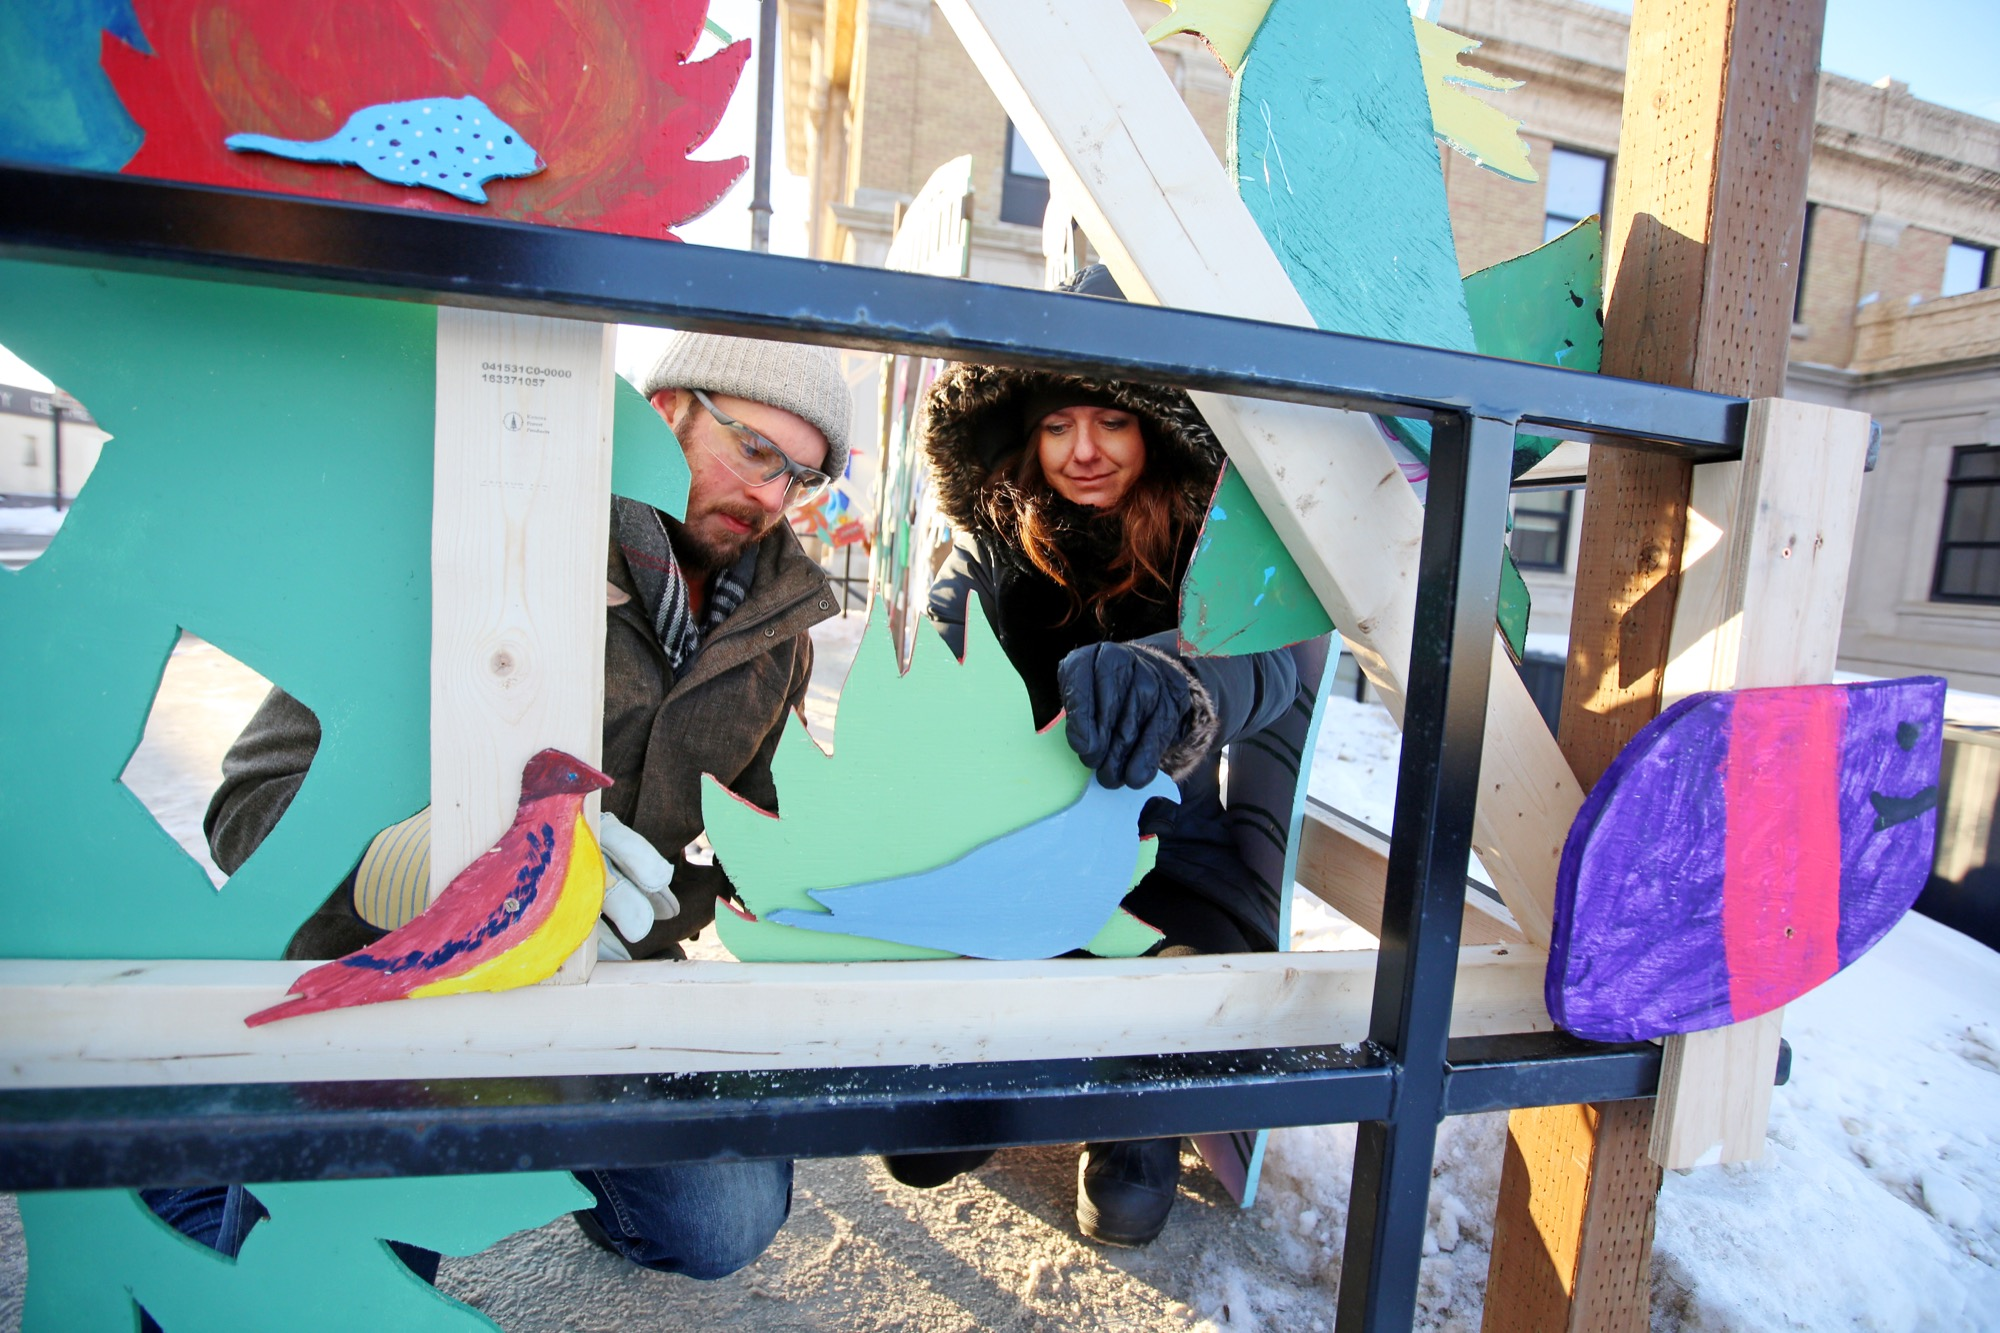 Kevin Bertram and Chris Cooper, project co-ordinator with the Winter Garden organizing committee, help install an outdoor art installation outside Westman Immigrant Services on Pacific Avenue in January.